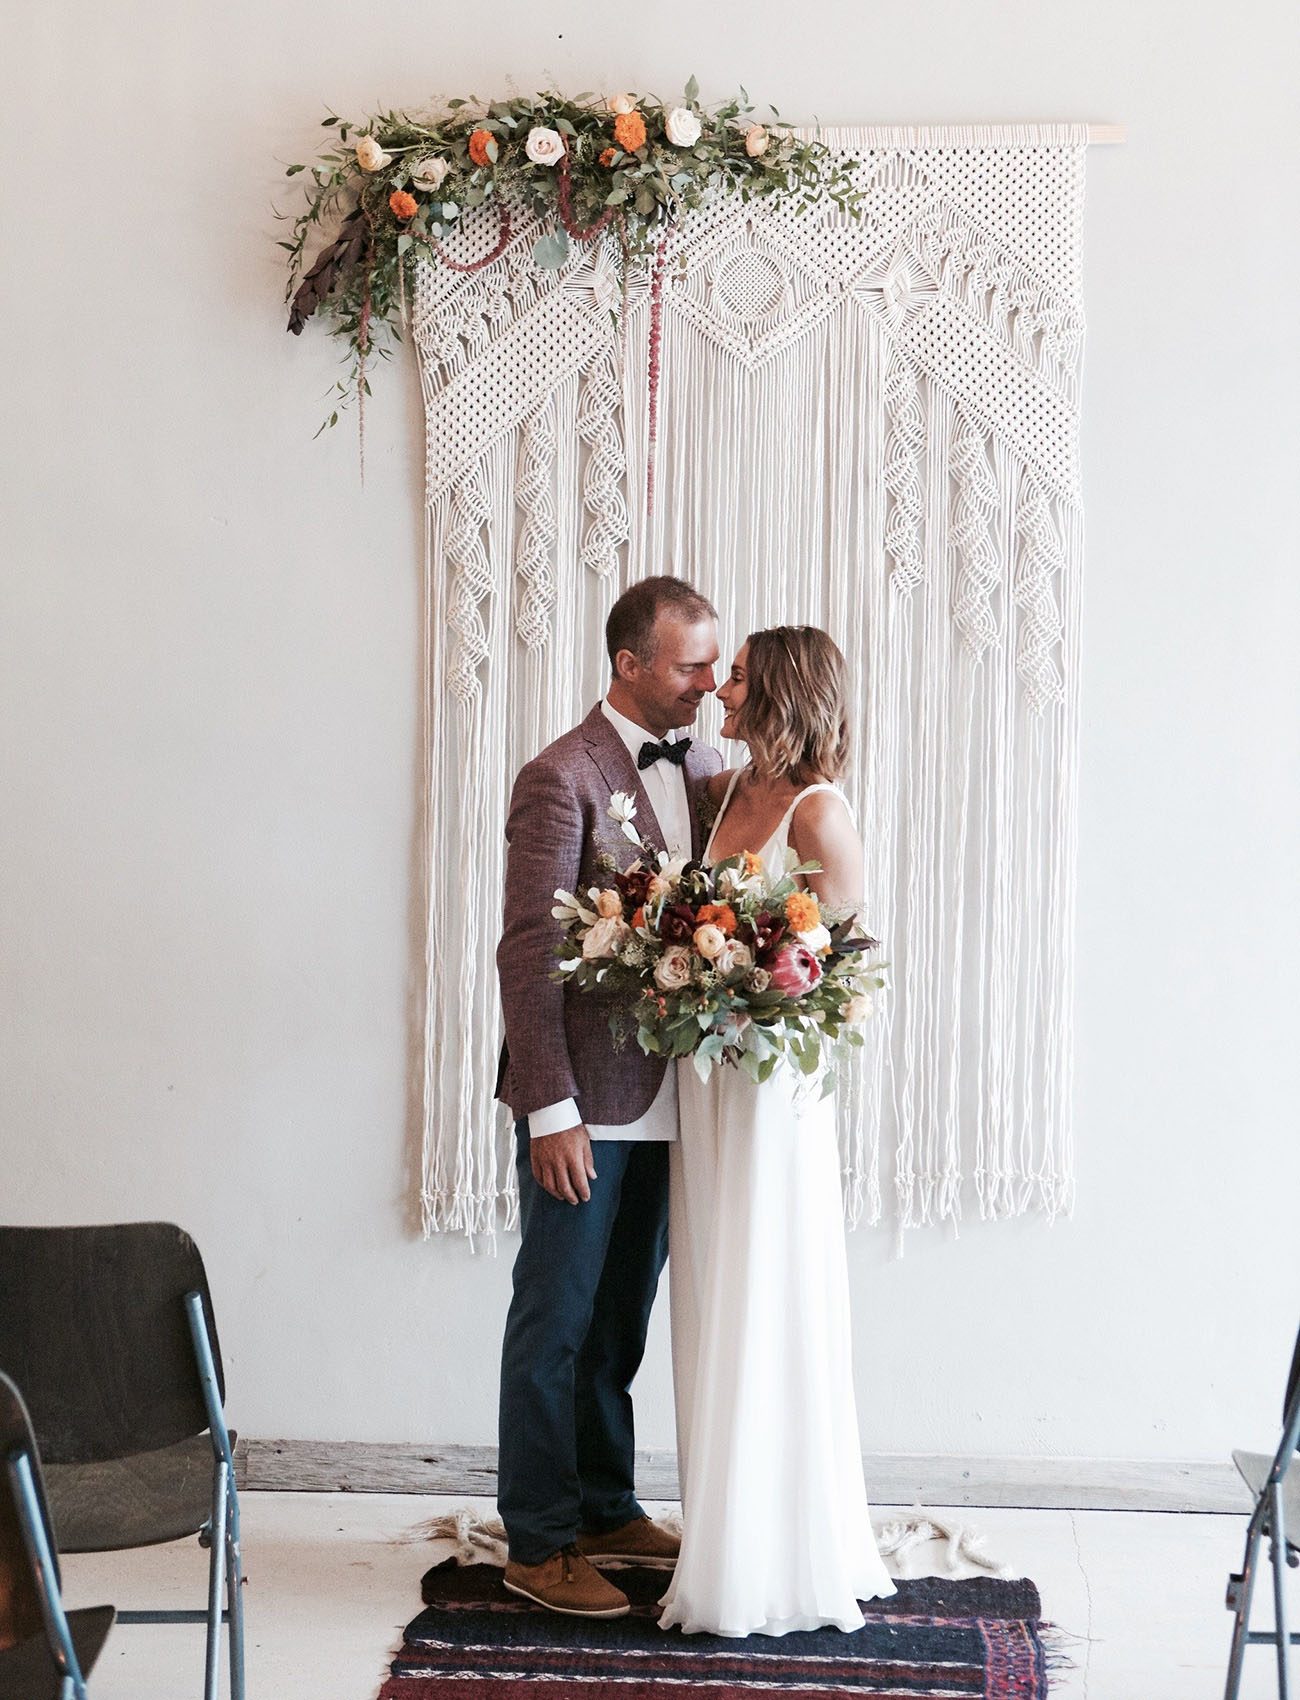 Bohemian Elopement Inspiration In Miamis Wynwood Arts District